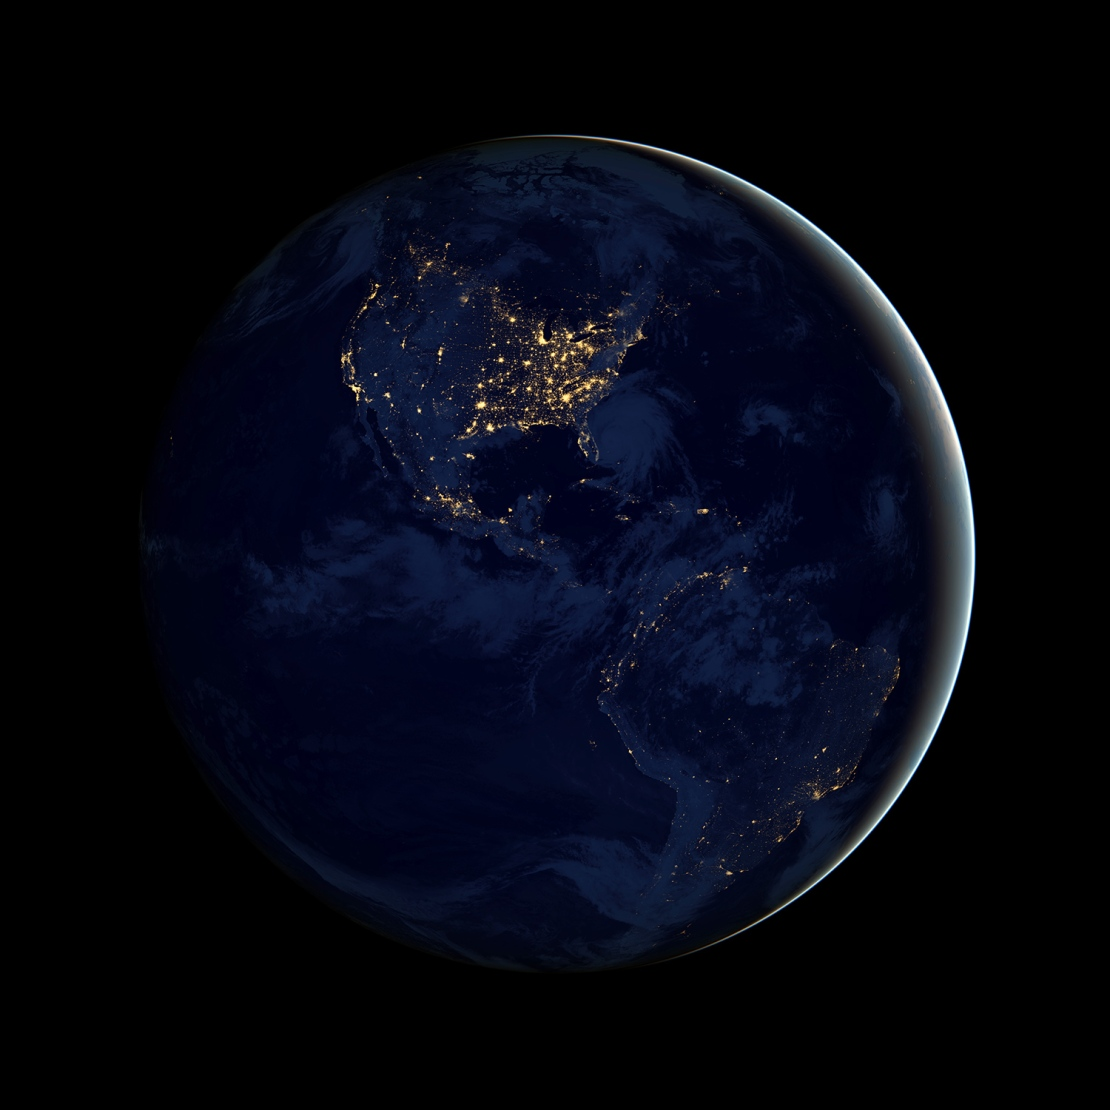 earth-at-night-city-lights-nasa-noaa-for-verglas-media-blog